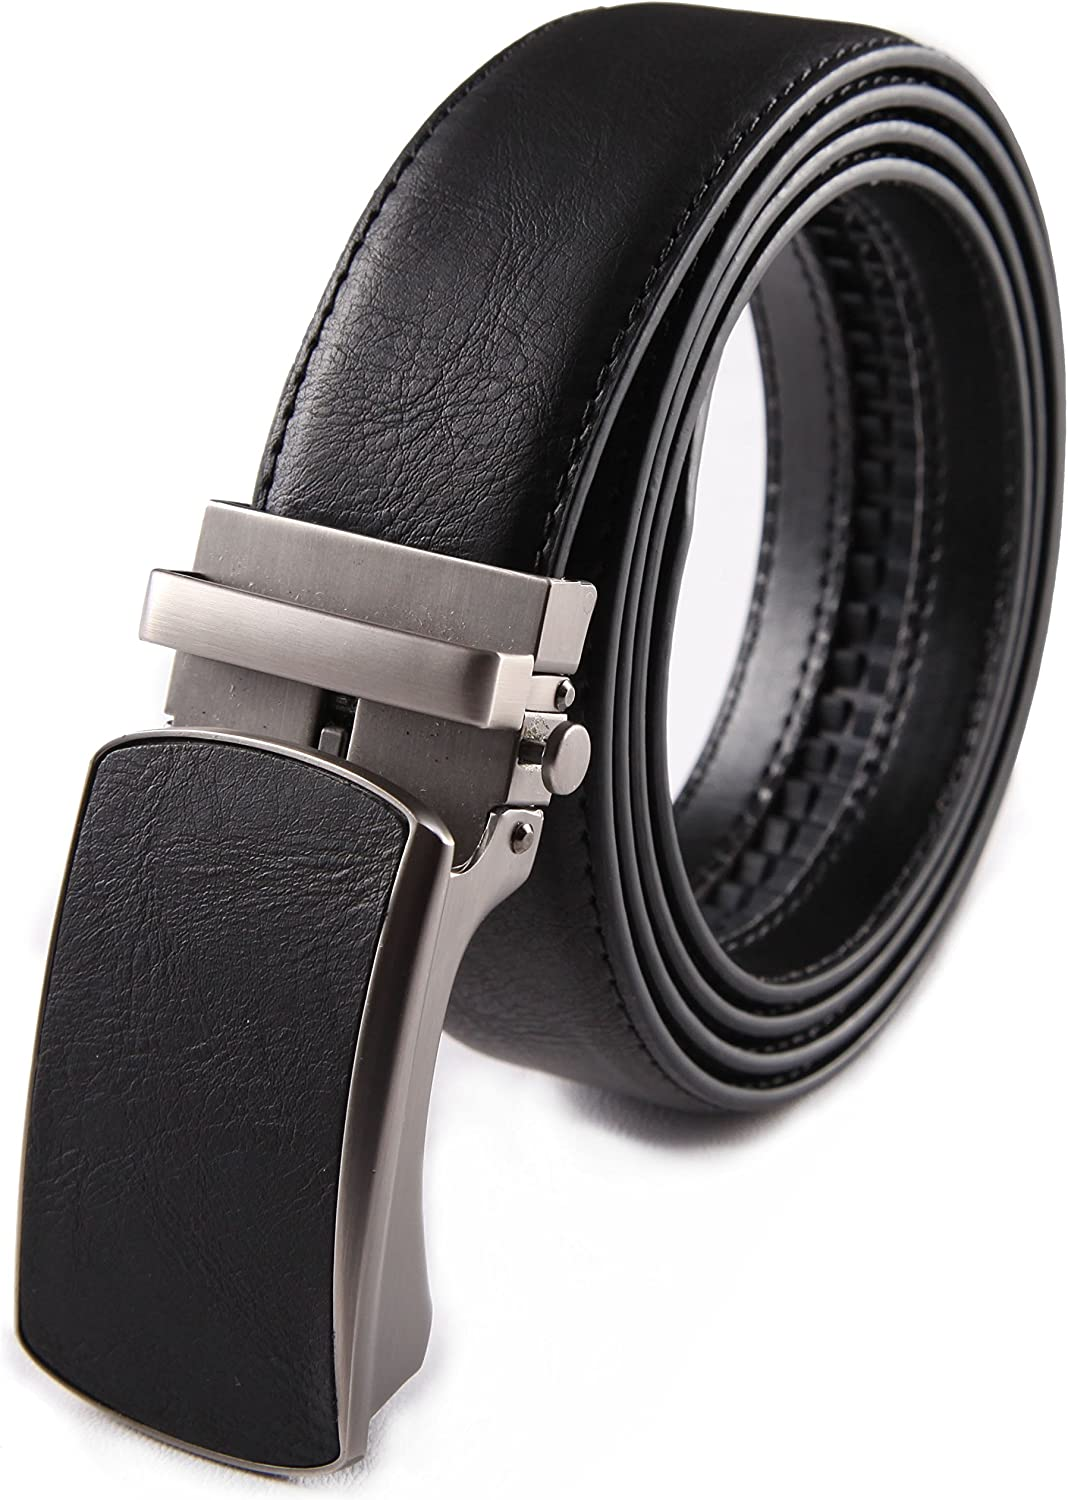 80749f7a9d10 Fabio Valenti Men's Classic Dress Leather Leather Leather Slide Belt with  Auto Lock Click Open up Buckle, Trim to Exact Fit, Big & Tall. 7bbe54